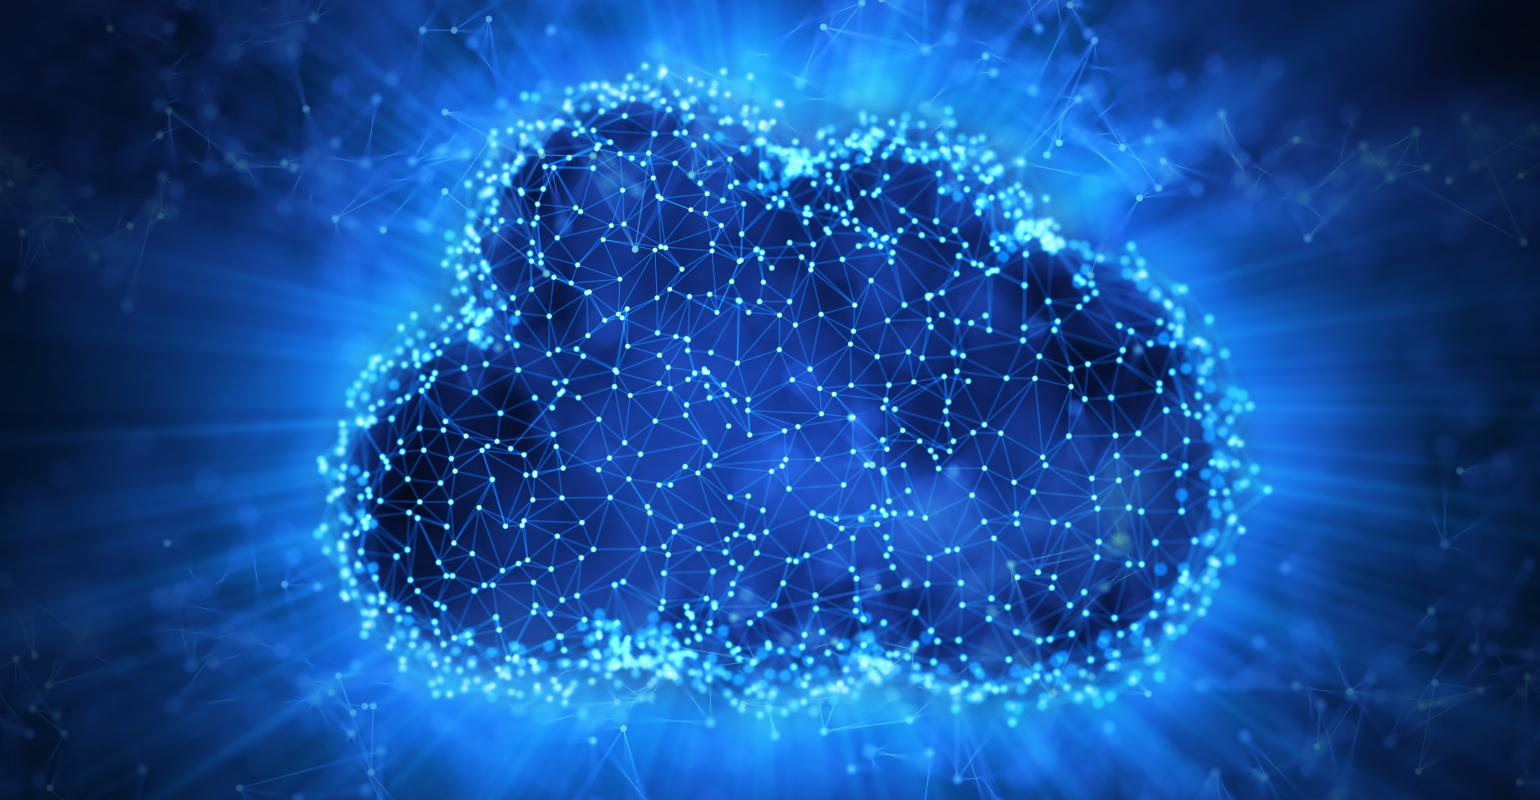 Cloud Computing Market Outlook: World Approaching Demand & Growth Prospect 2019-2025